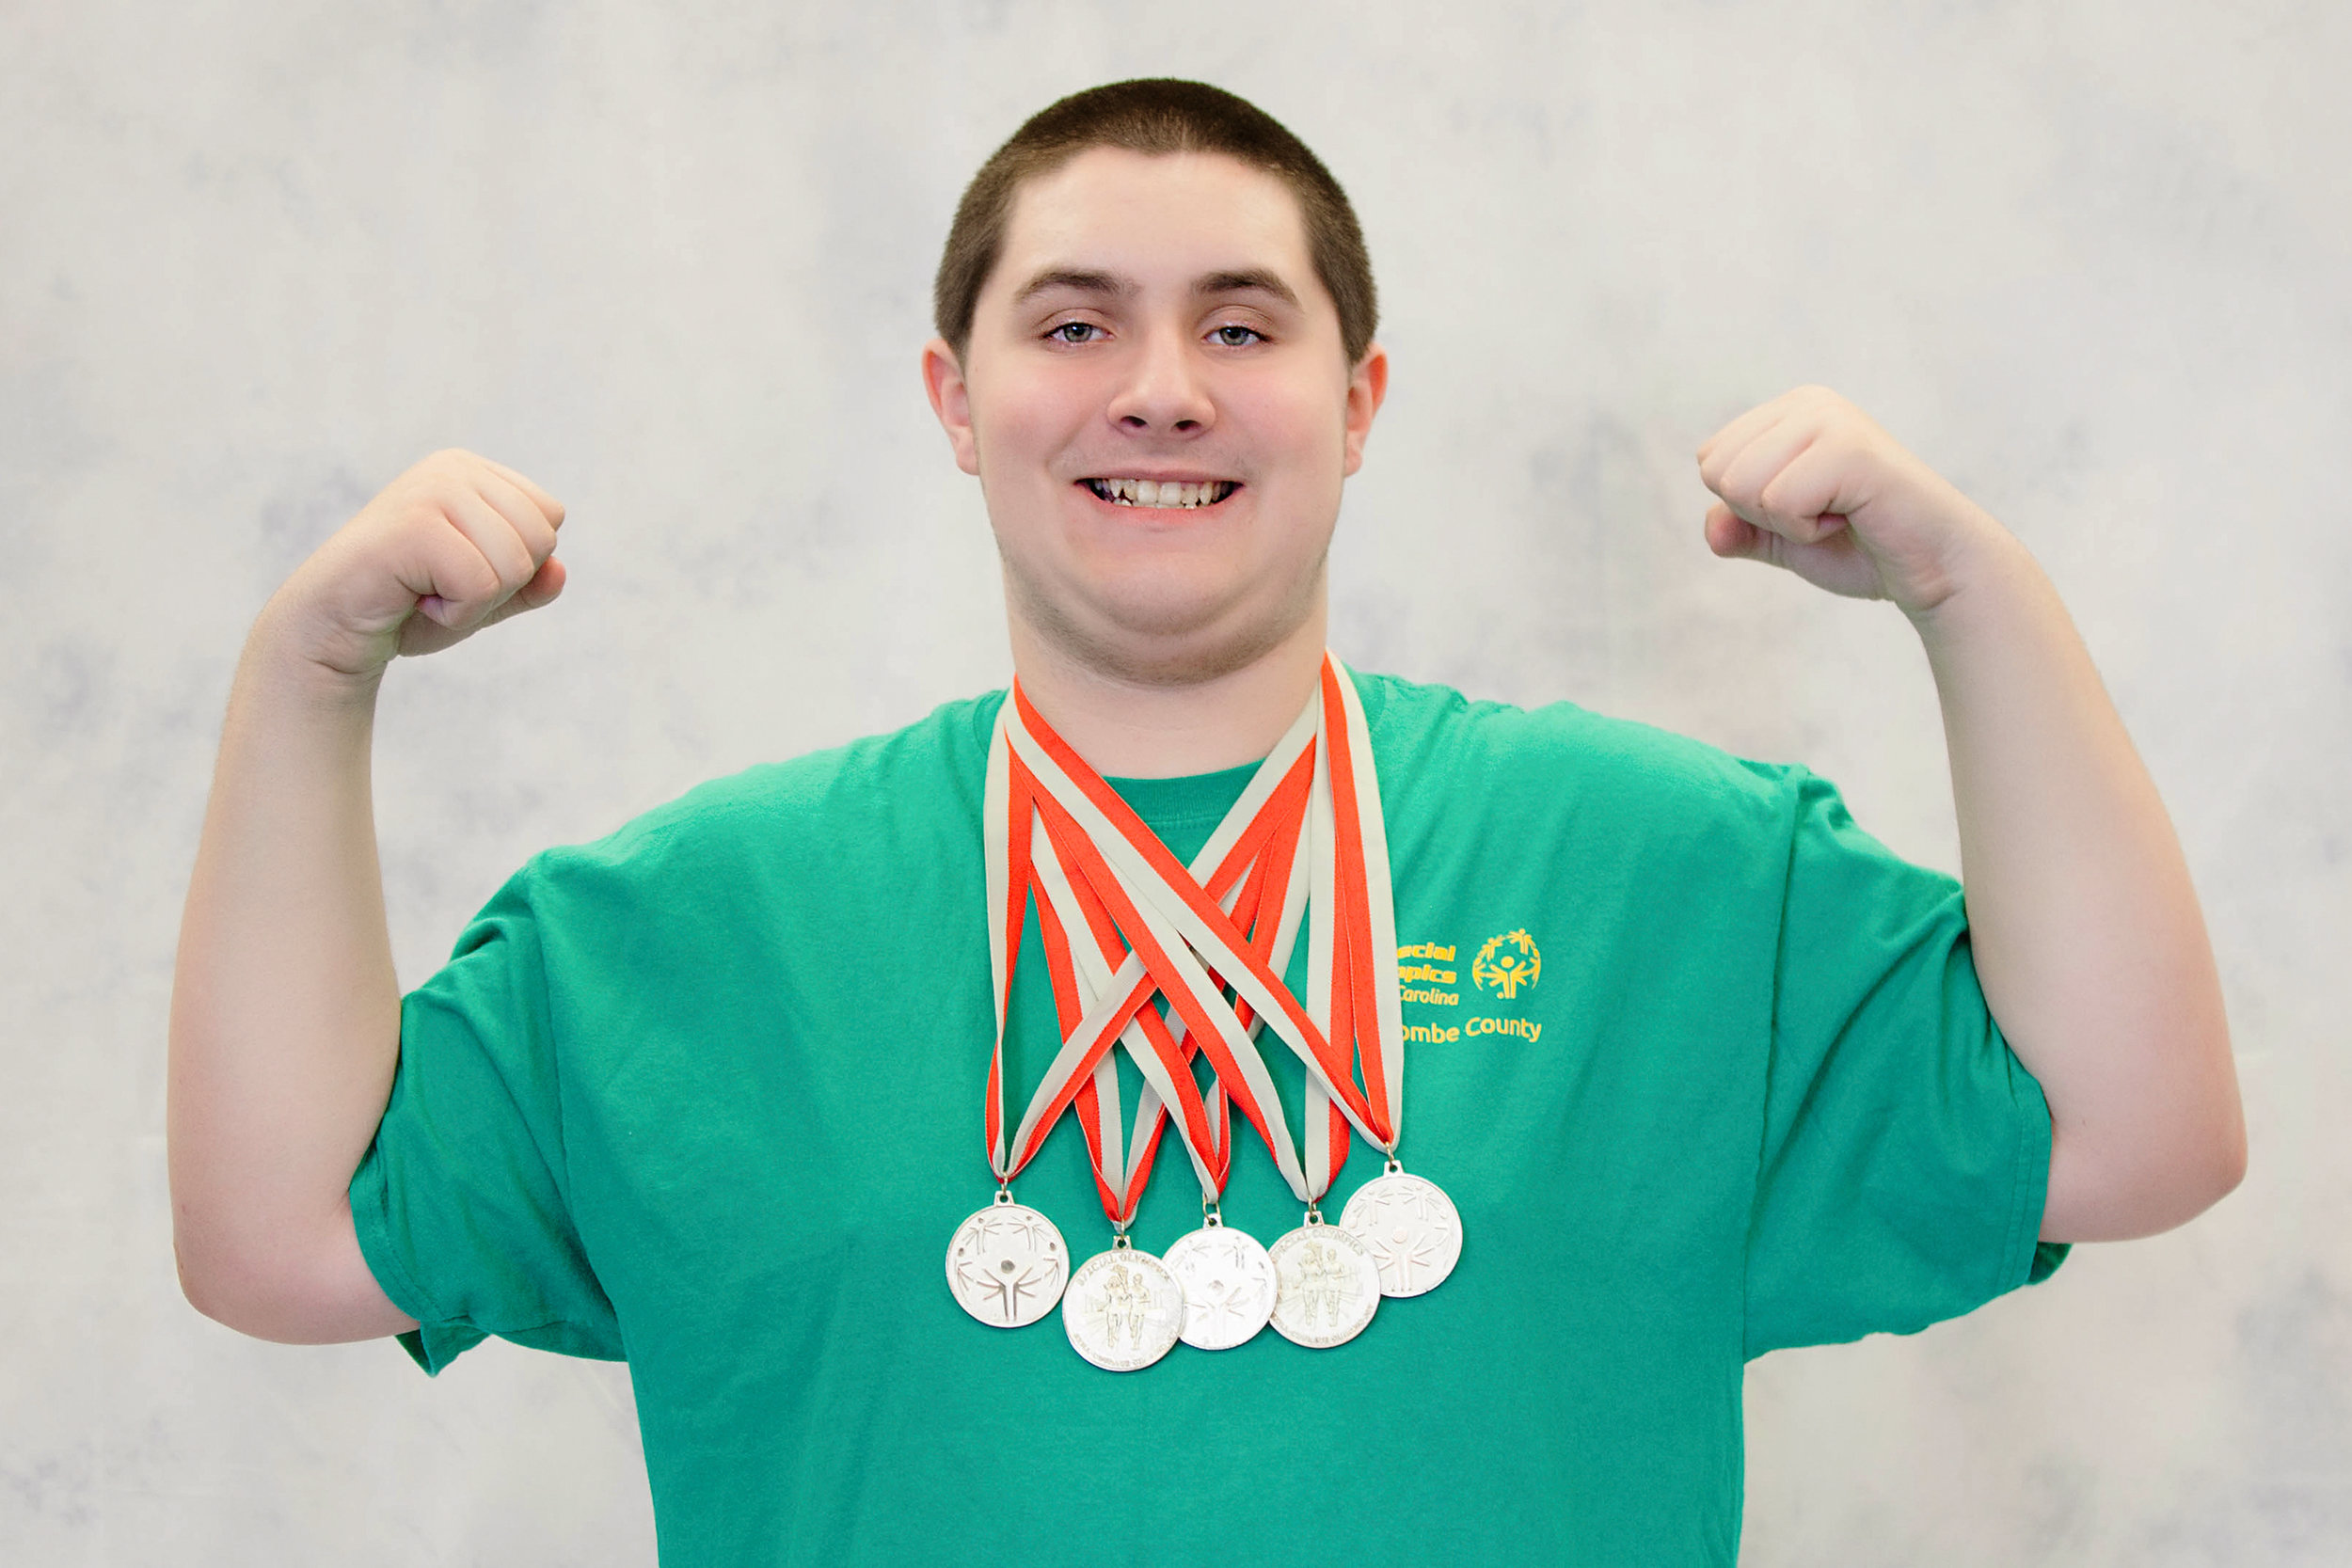 Such pride in his accomplishments with the Buncombe county special olympics.